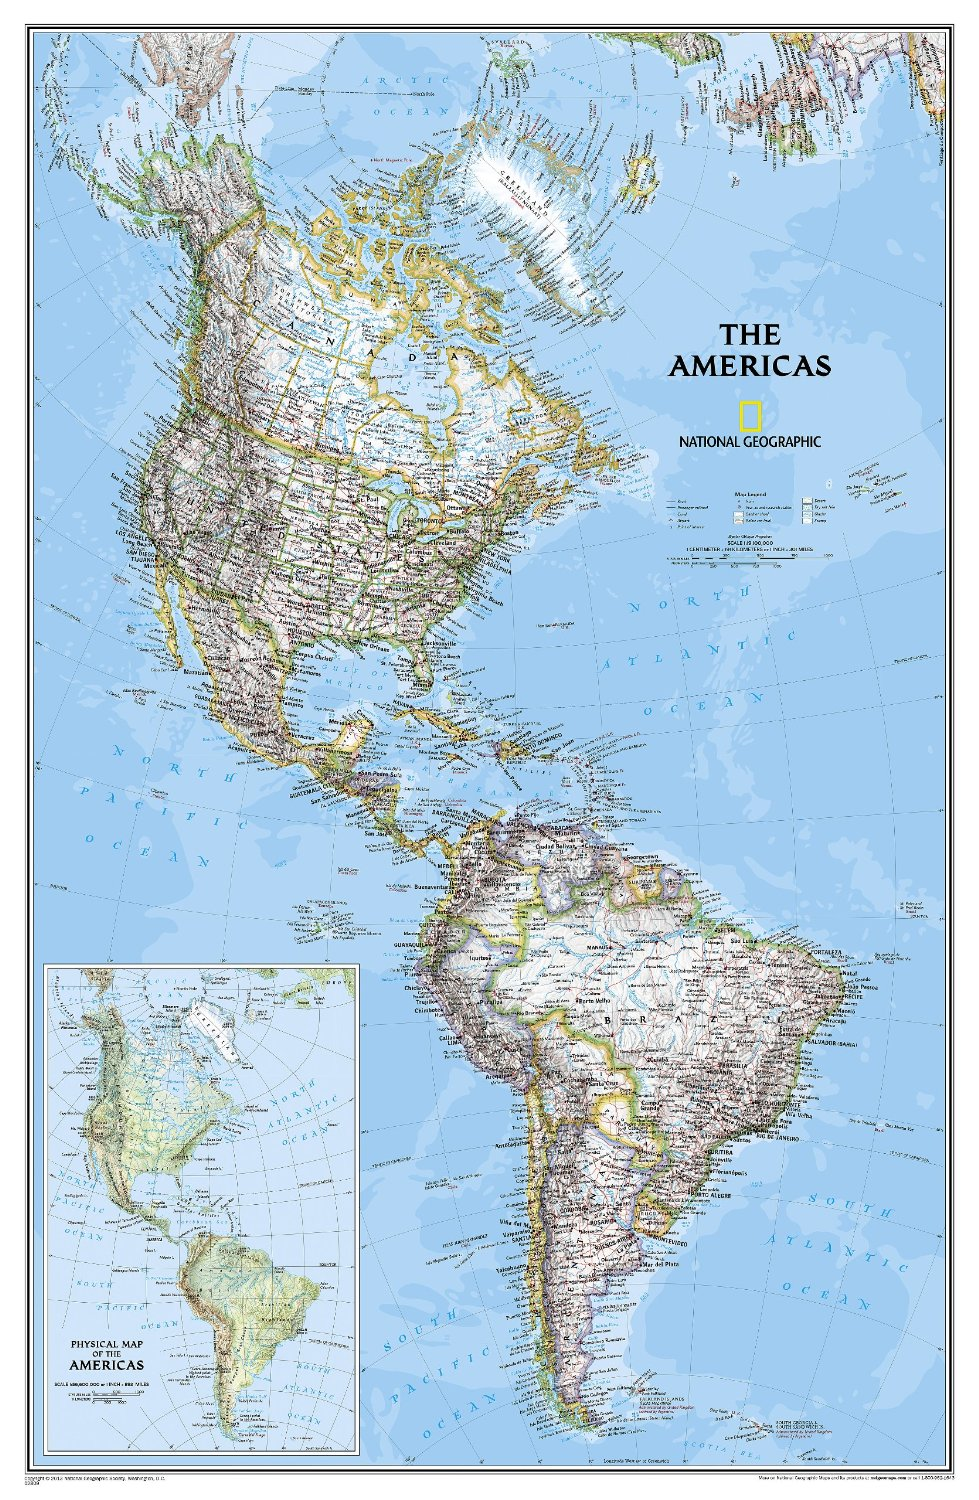 Map Of The Americas For The Wall